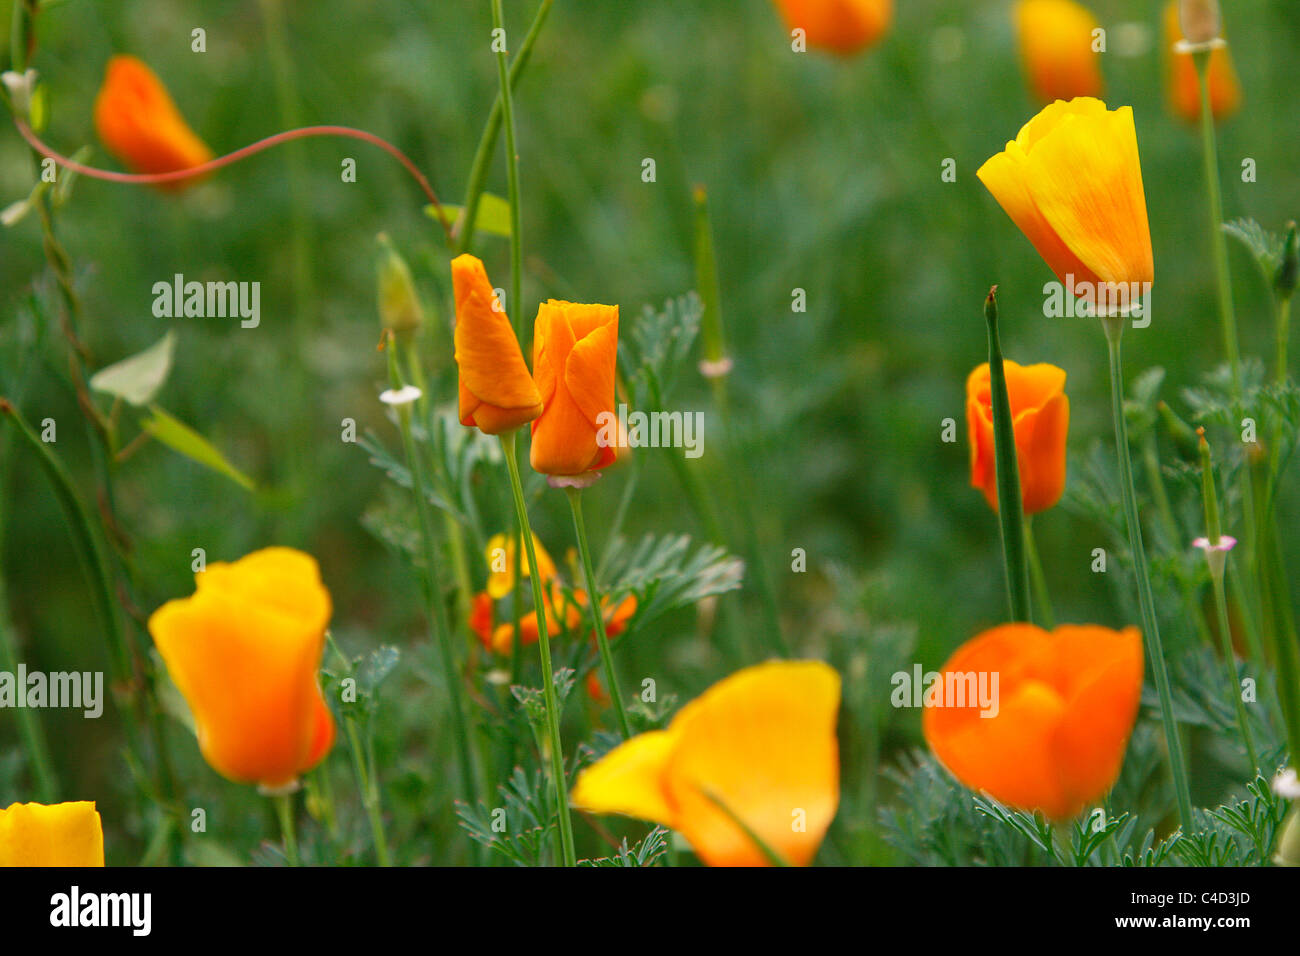 Yellow And Orange Poppy Flowers Growing Idyllically In A Meadow Of